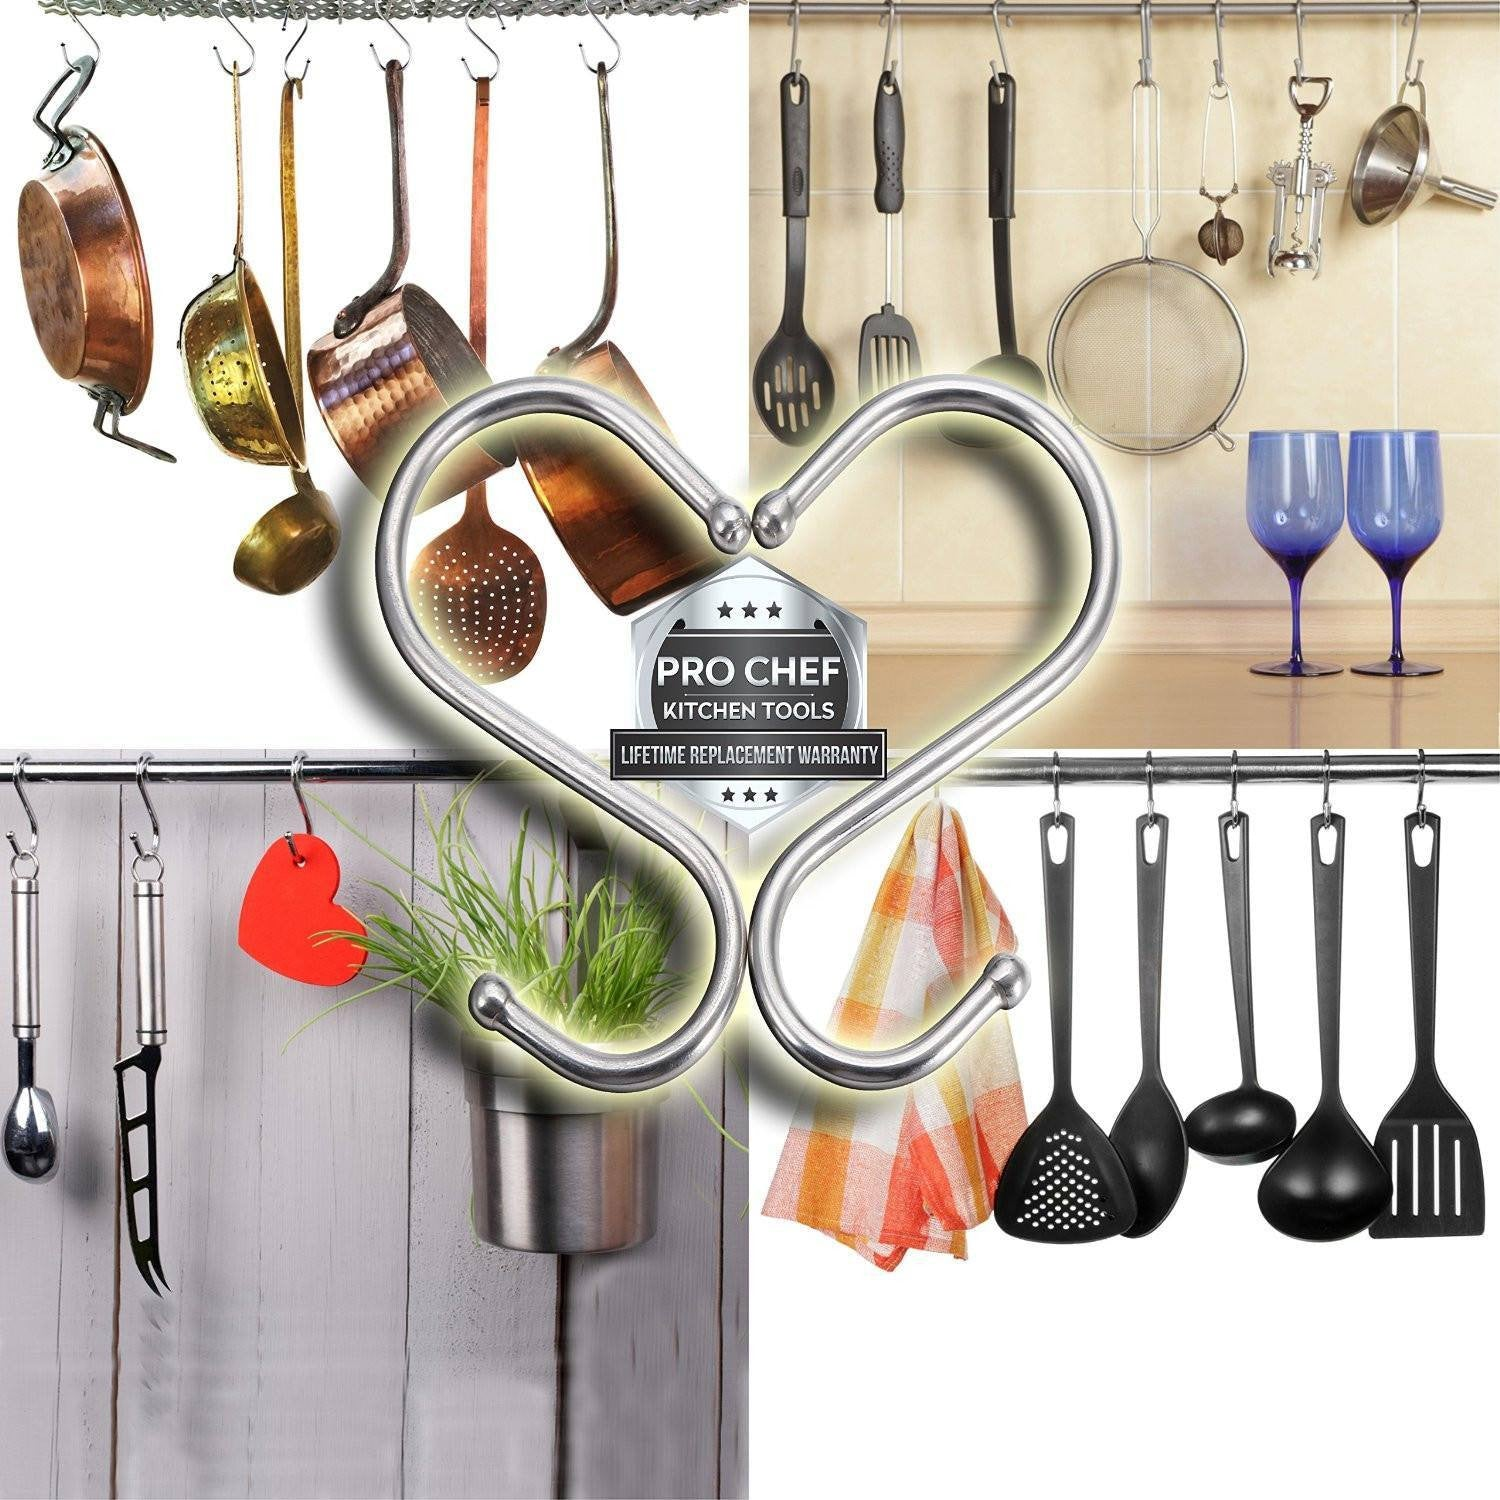 set to with kitchenware tools steel utensil stand piece view stainless six a larger click lrg kitchen image giannini